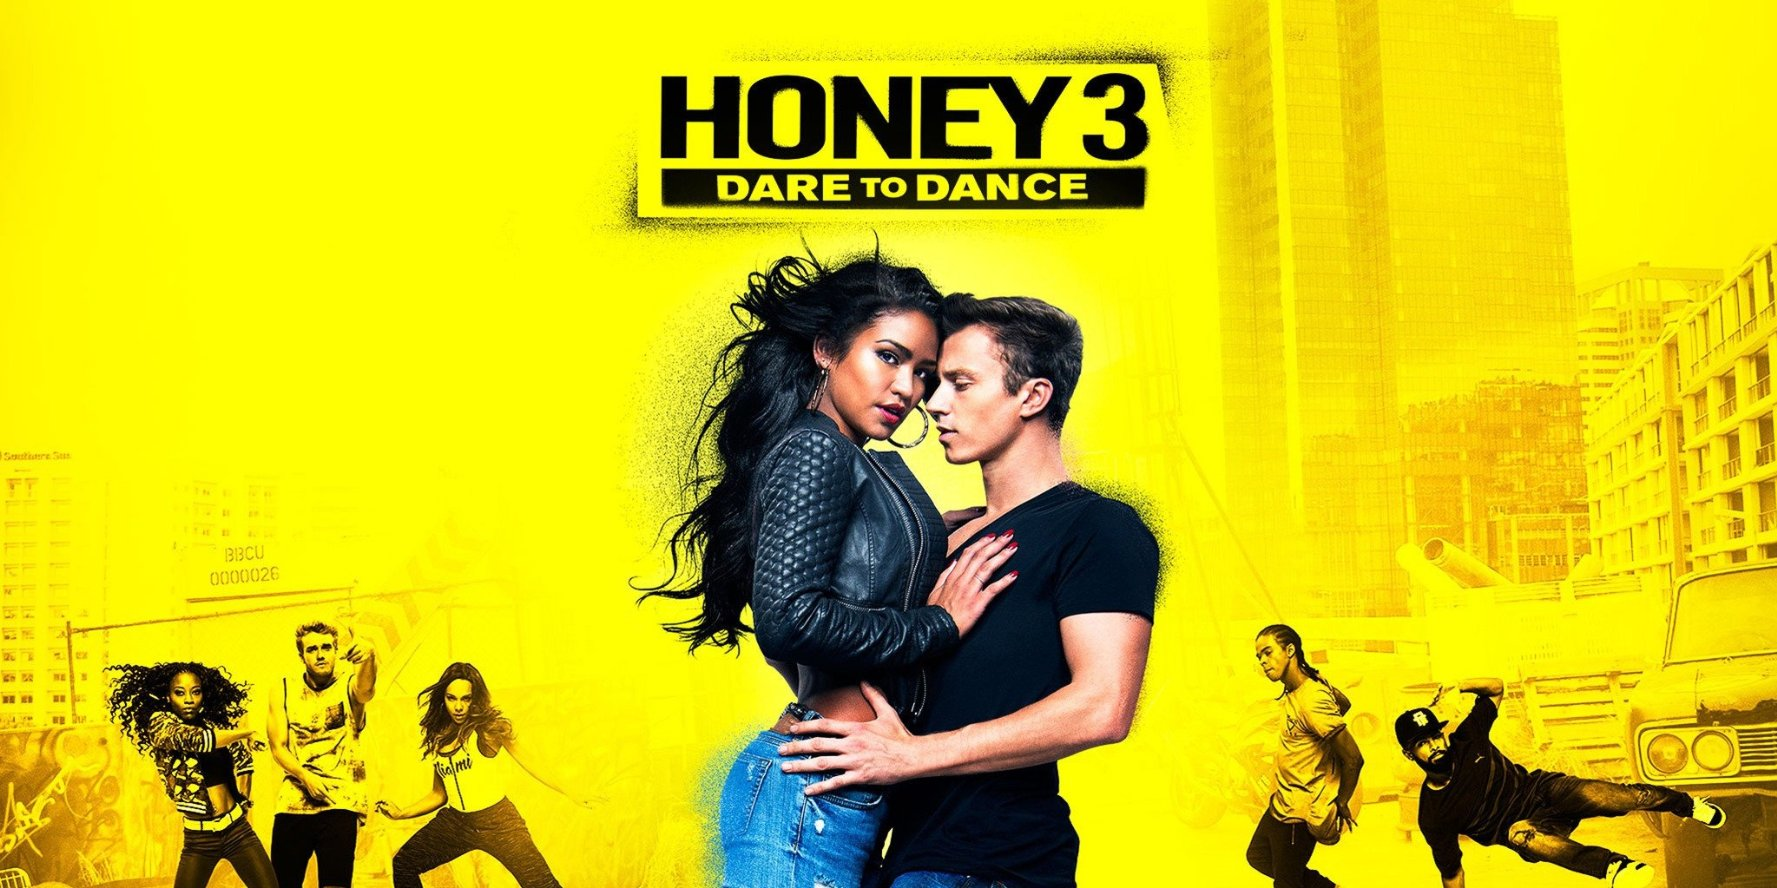 honey_3_dare_to_dance_review_opiniao